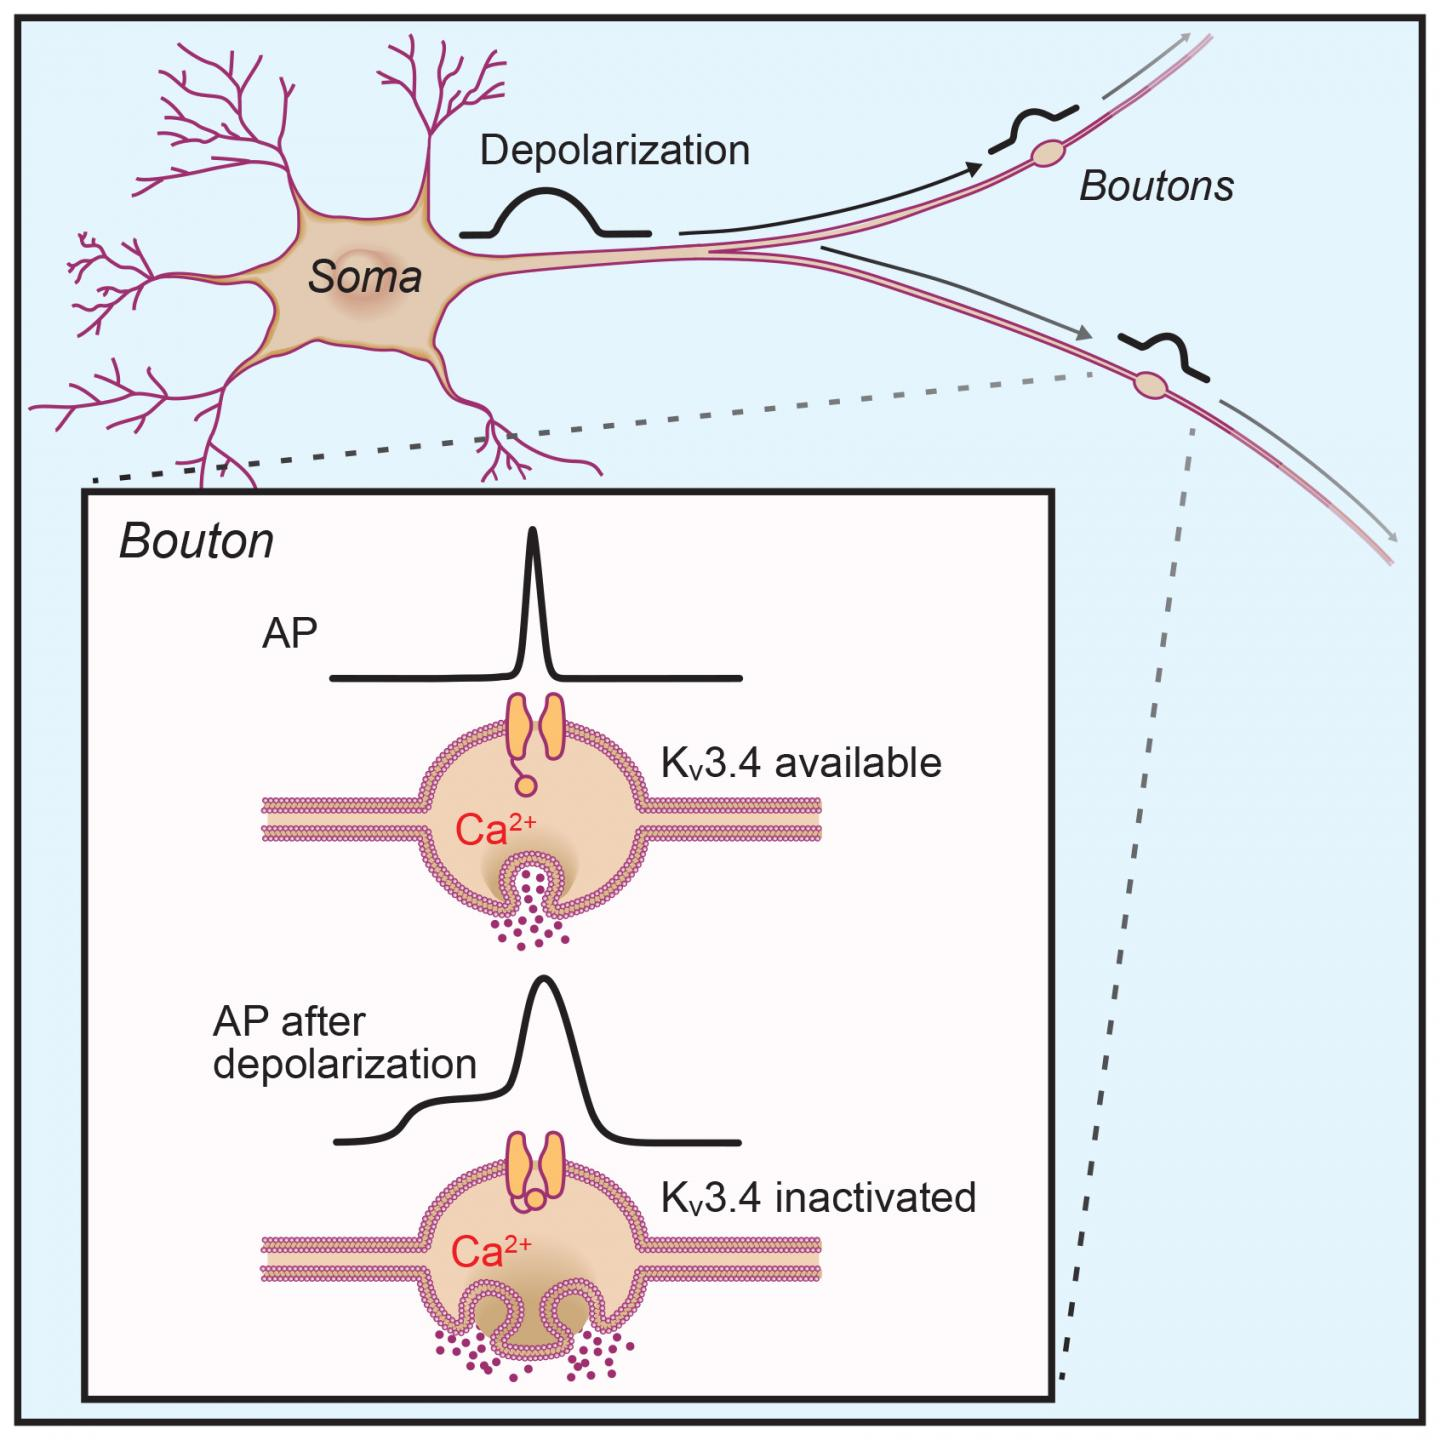 Short-Term Neuronal Plasticity Can Result From Inactivation of Kv3 Channels